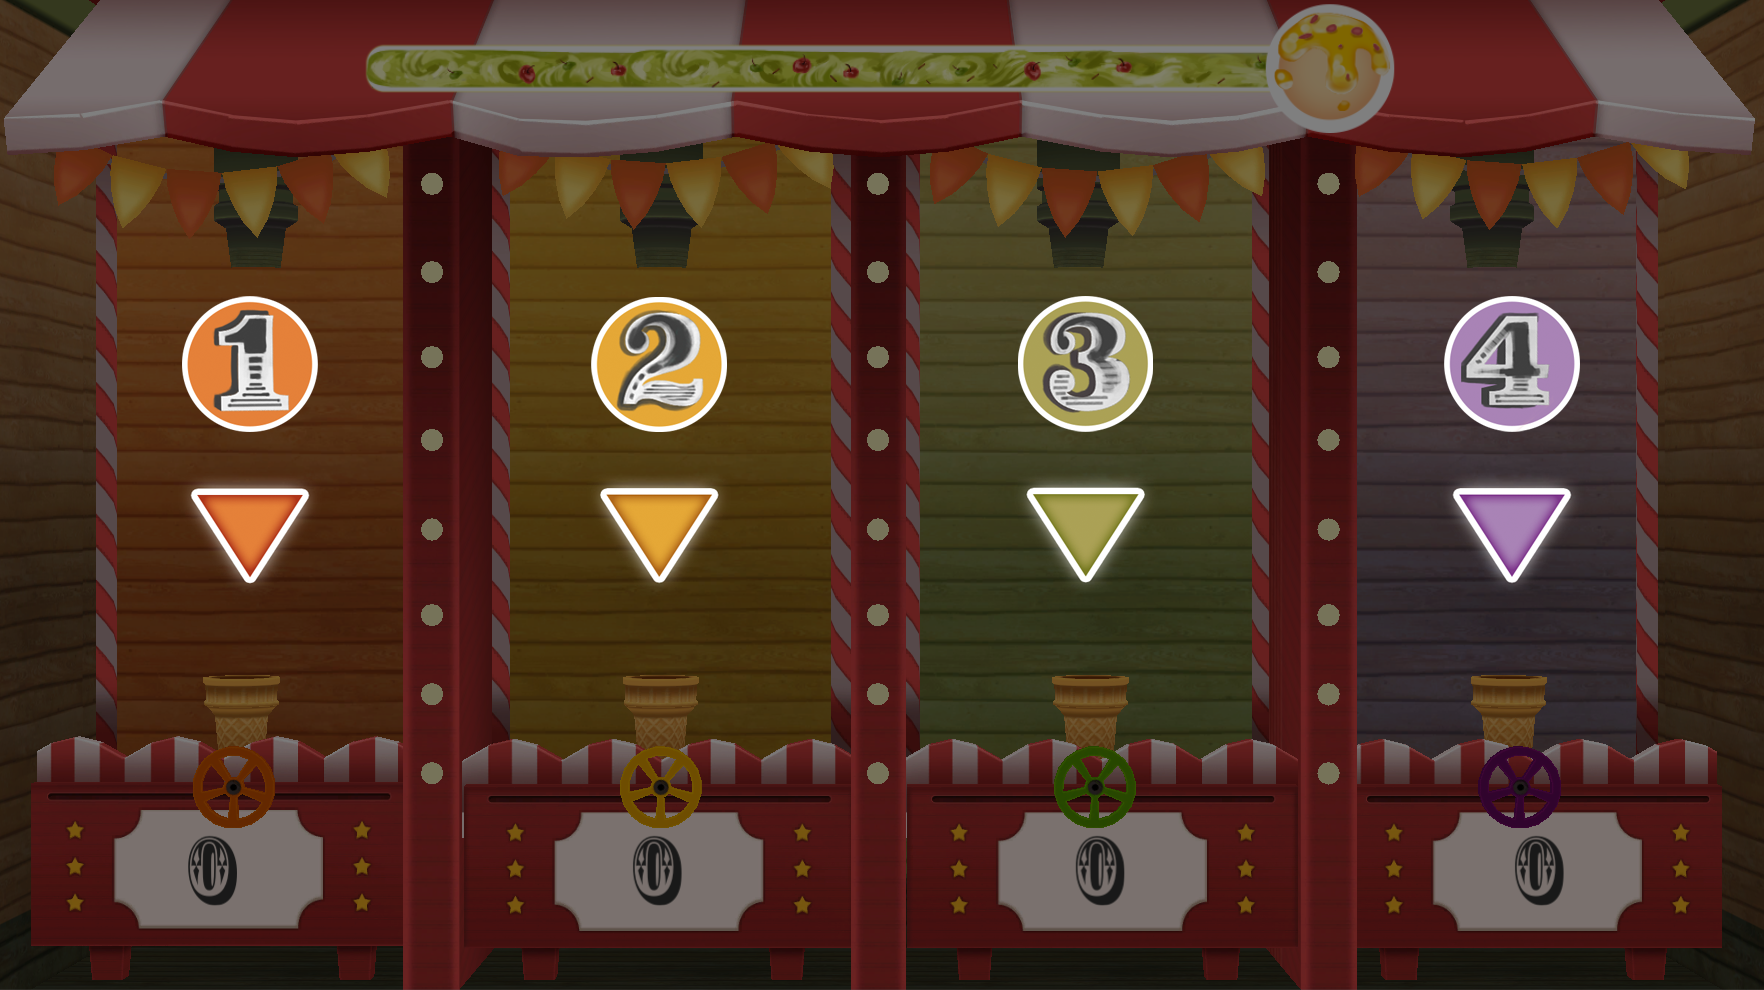 Scoop God is a multiplayer game that allows up to 4 players. Each players have a slot on the screen, which represented as a number and color.